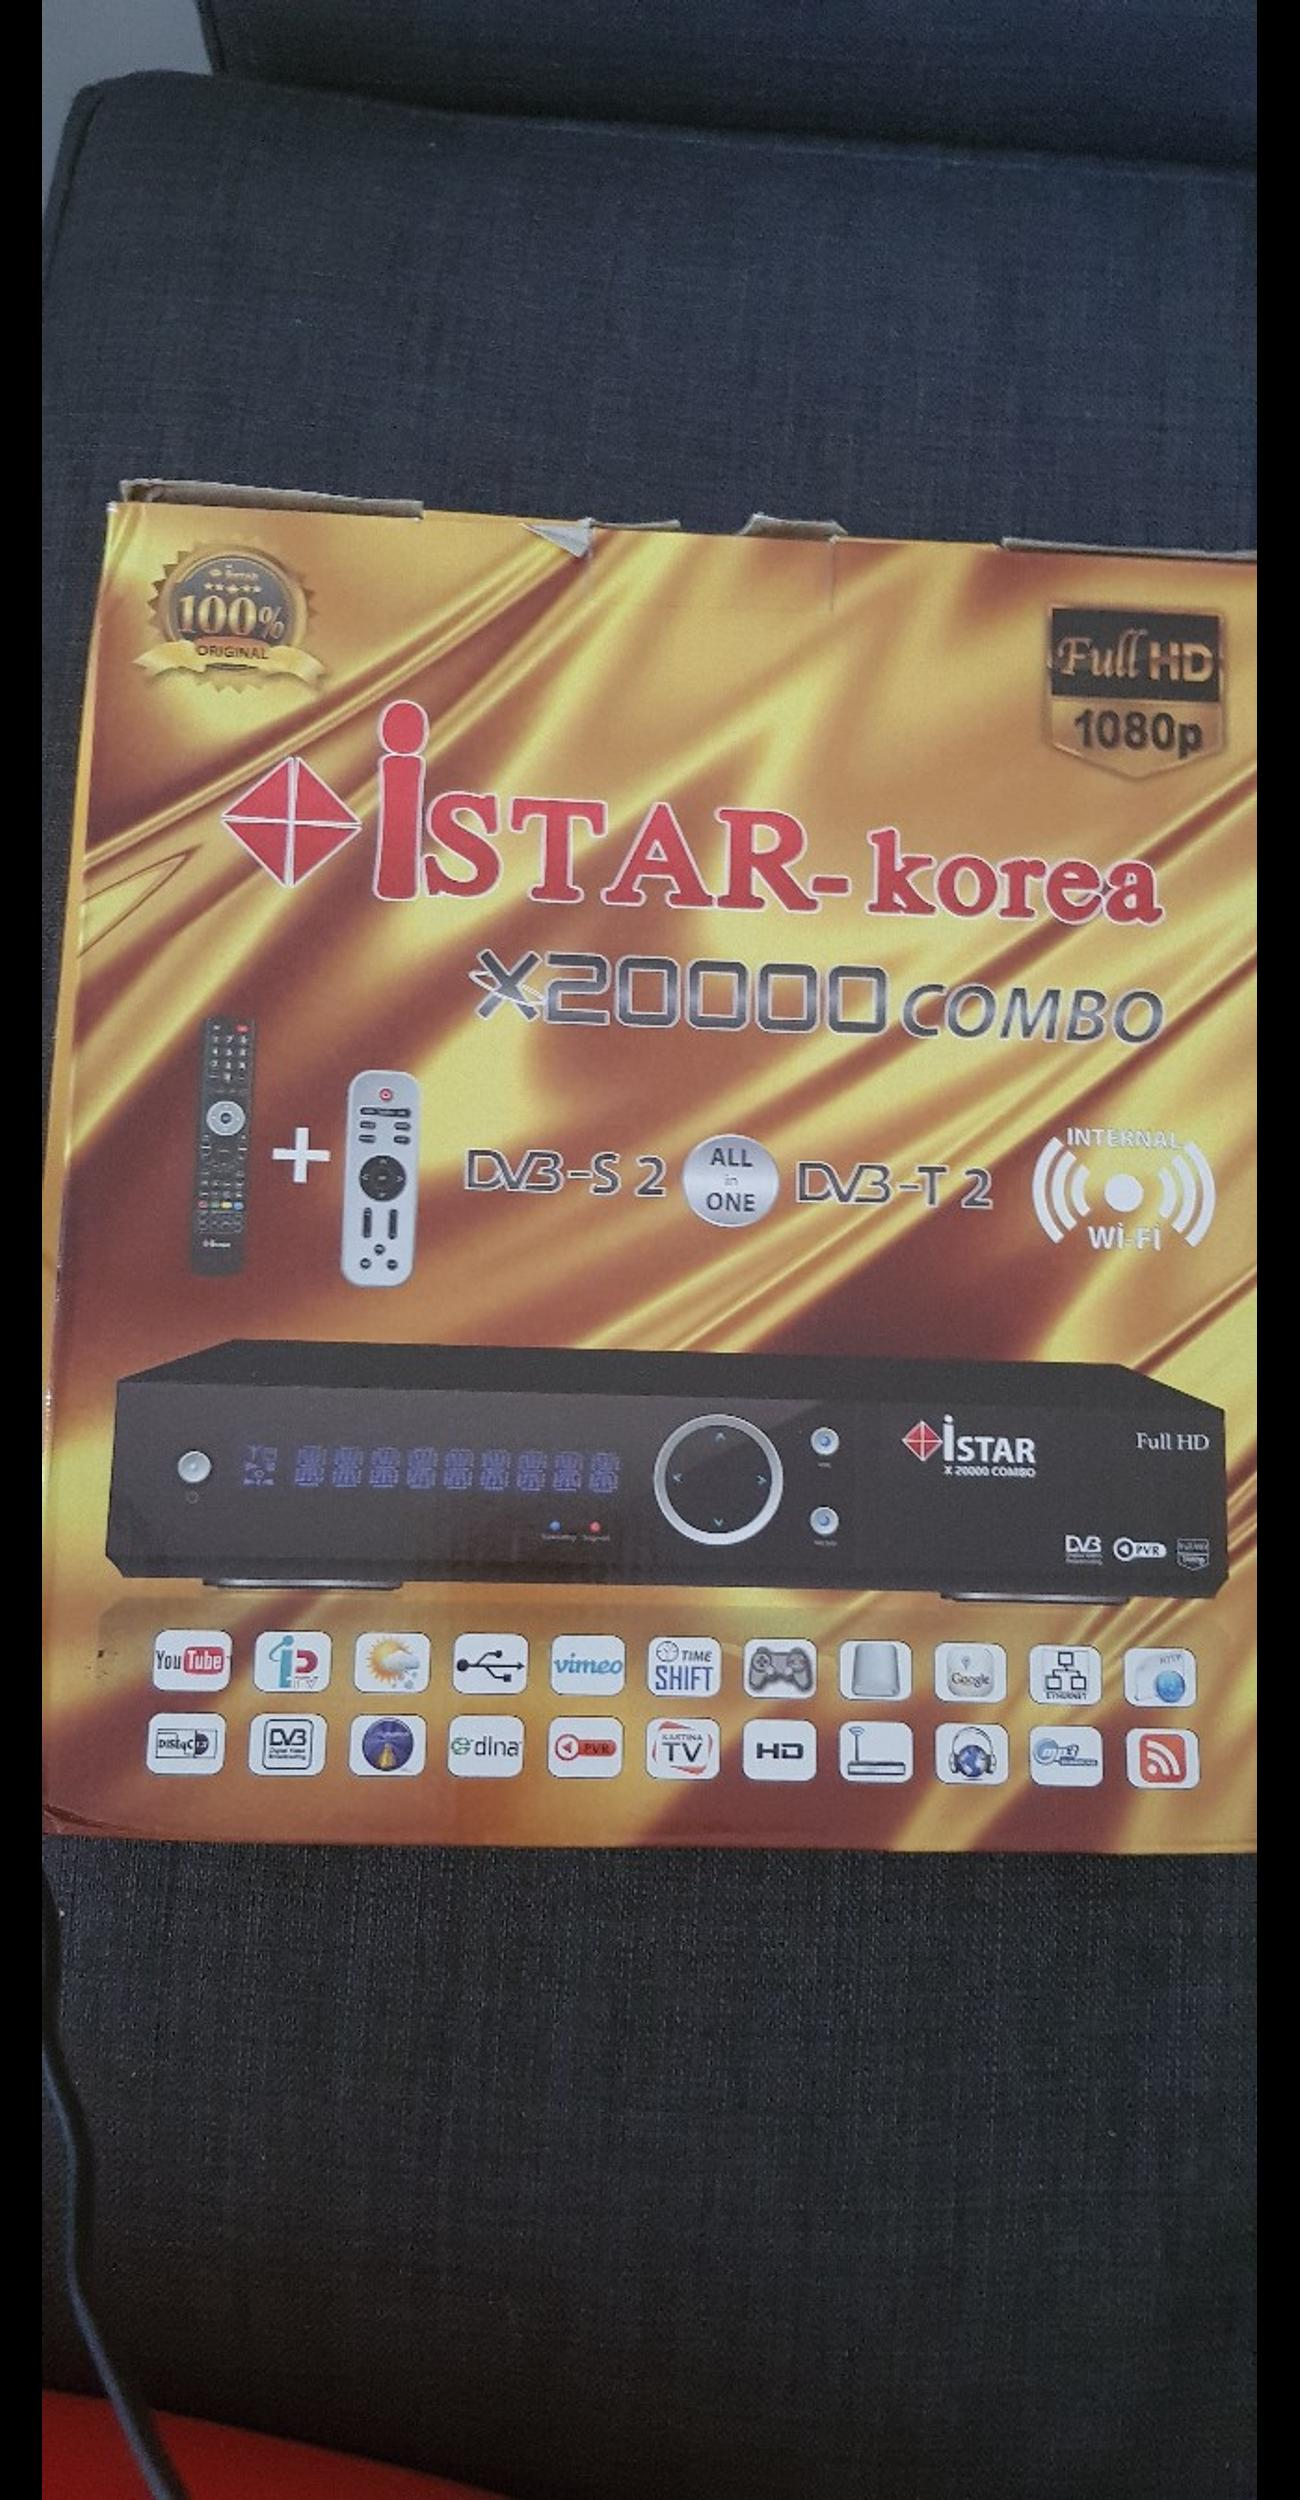 Istar-korea in IG11 London for £35 00 for sale - Shpock